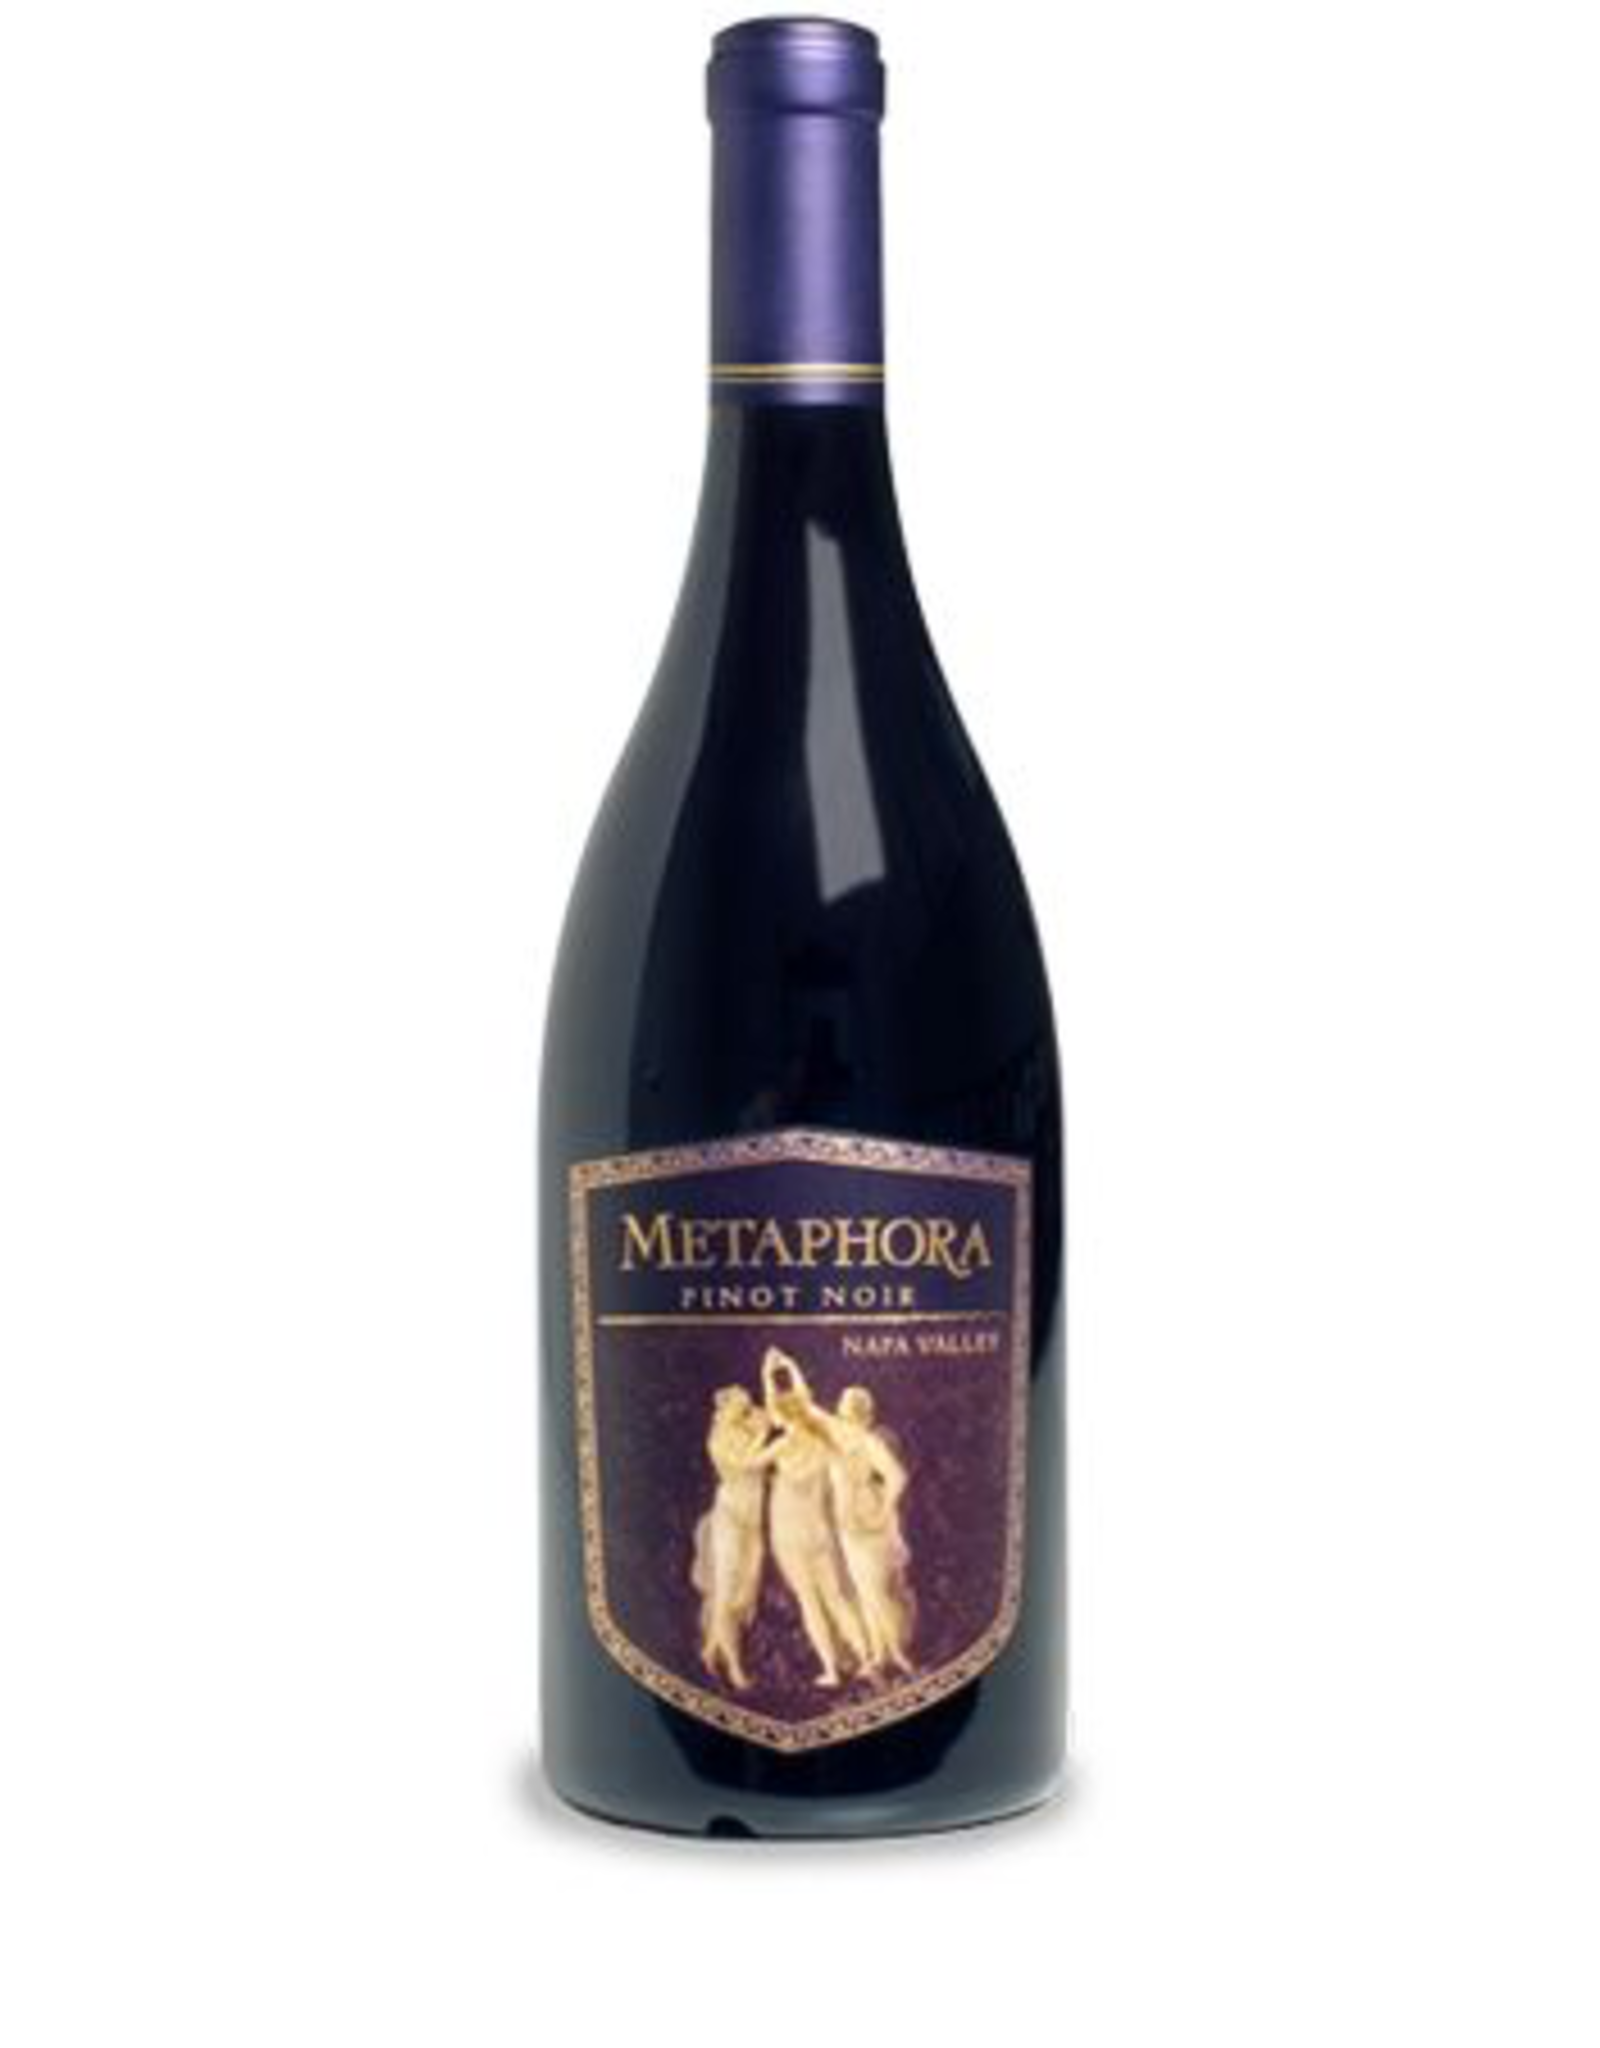 Red Wine 2010, Metaphora, Pinot Noir, Rutherford, Napa Valley, California, 14.5% Alc, TW93